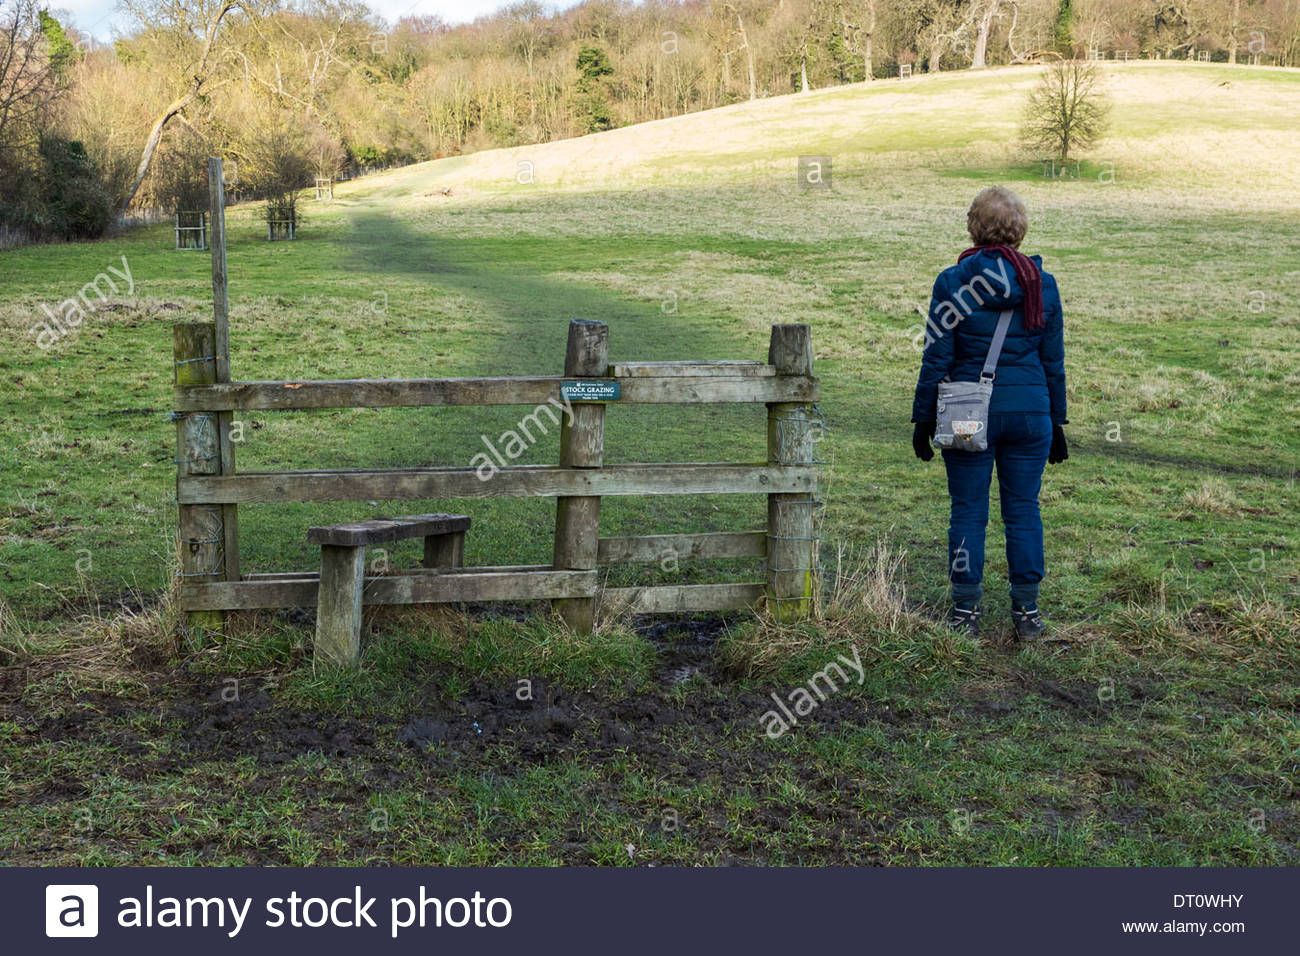 A walker bypasses a redundant stile on a footpath where the fence either side has been removed leaving it isolated - Stock Image